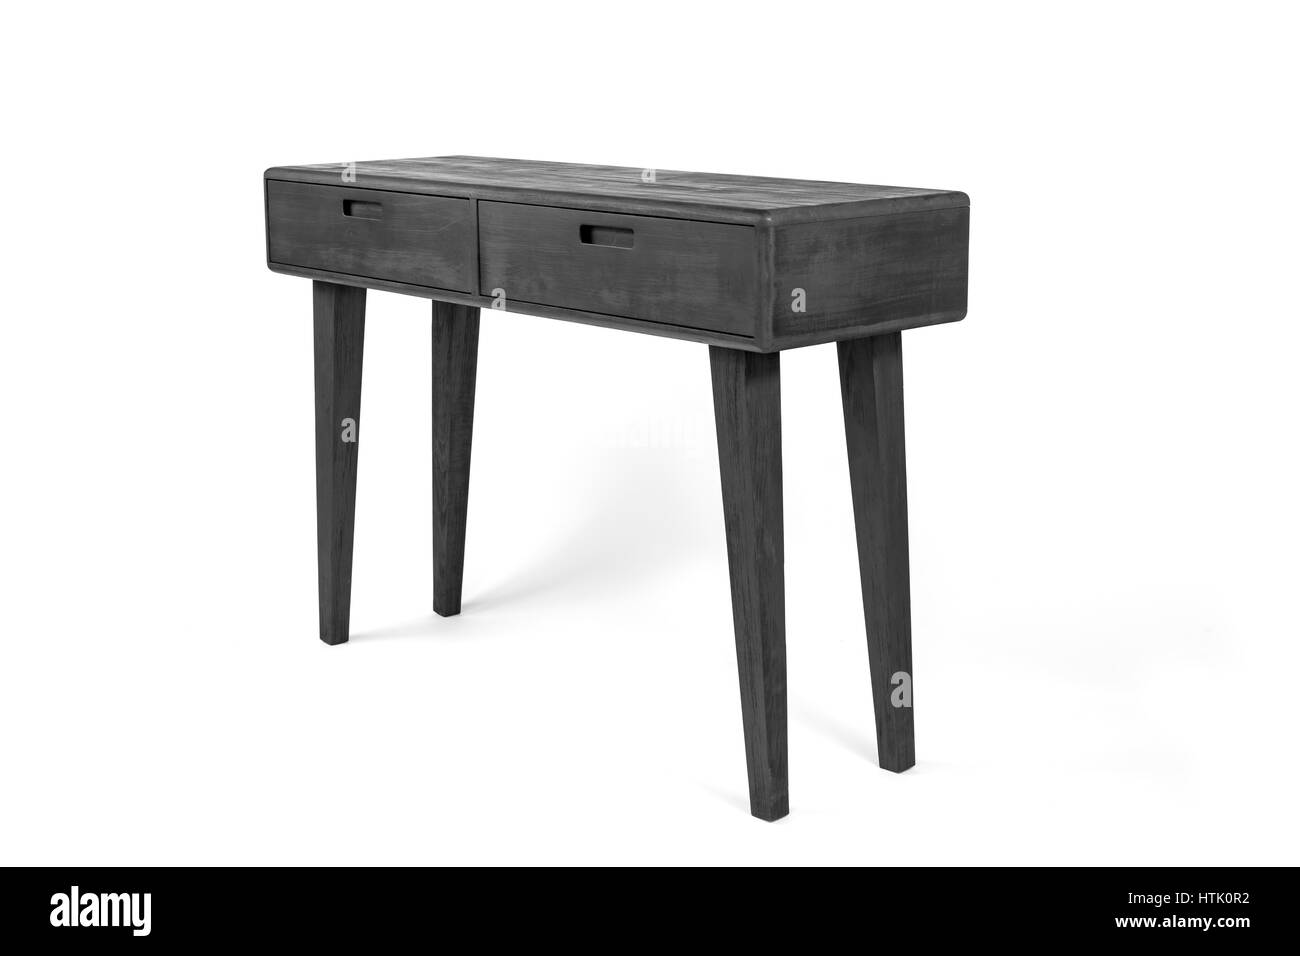 A Contemporary Console Table Made Out Of Burnt Wood